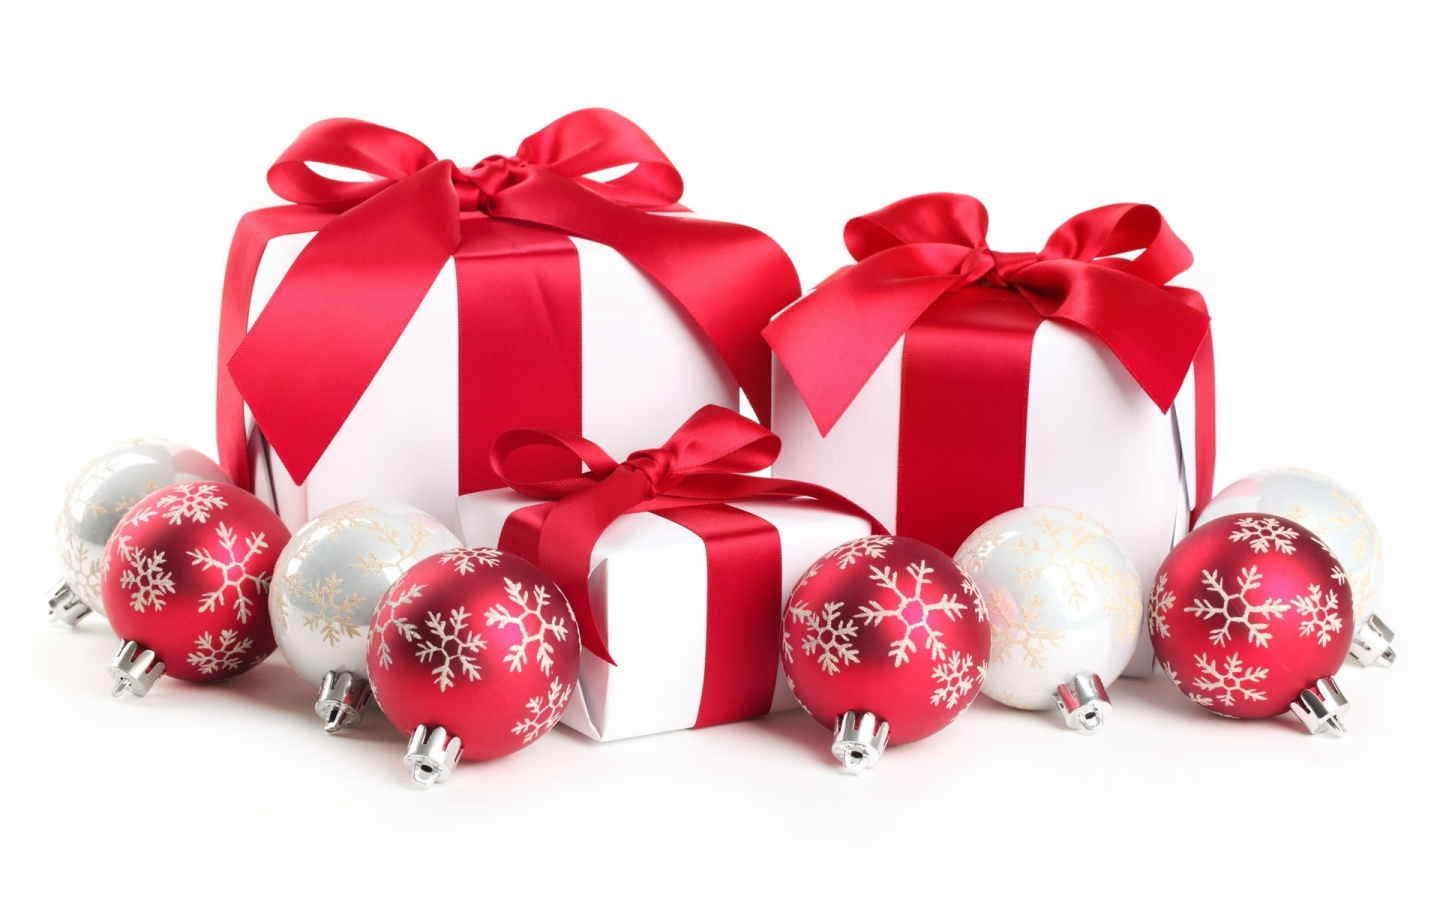 5 Heartfelt Gifts to Give this Christmas | Blogs Now